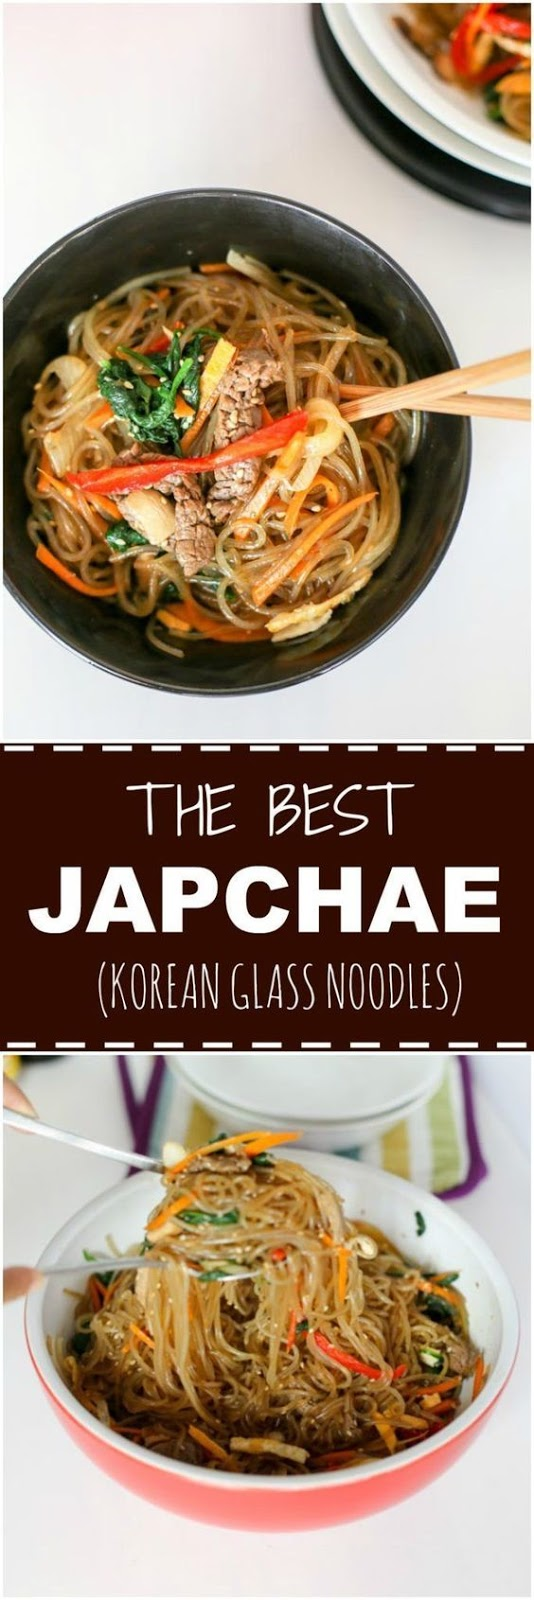 ★★★★☆ 7561 ratings | KOREAN GLASS NOODLE STIR FRY (JAPCHAE) #HEALTHYFOOD #EASYRECIPES #DINNER #LAUCH #DELICIOUS #EASY #HOLIDAYS #RECIPE #KOREAN #GLASS #NOODLE #STIR #FRY